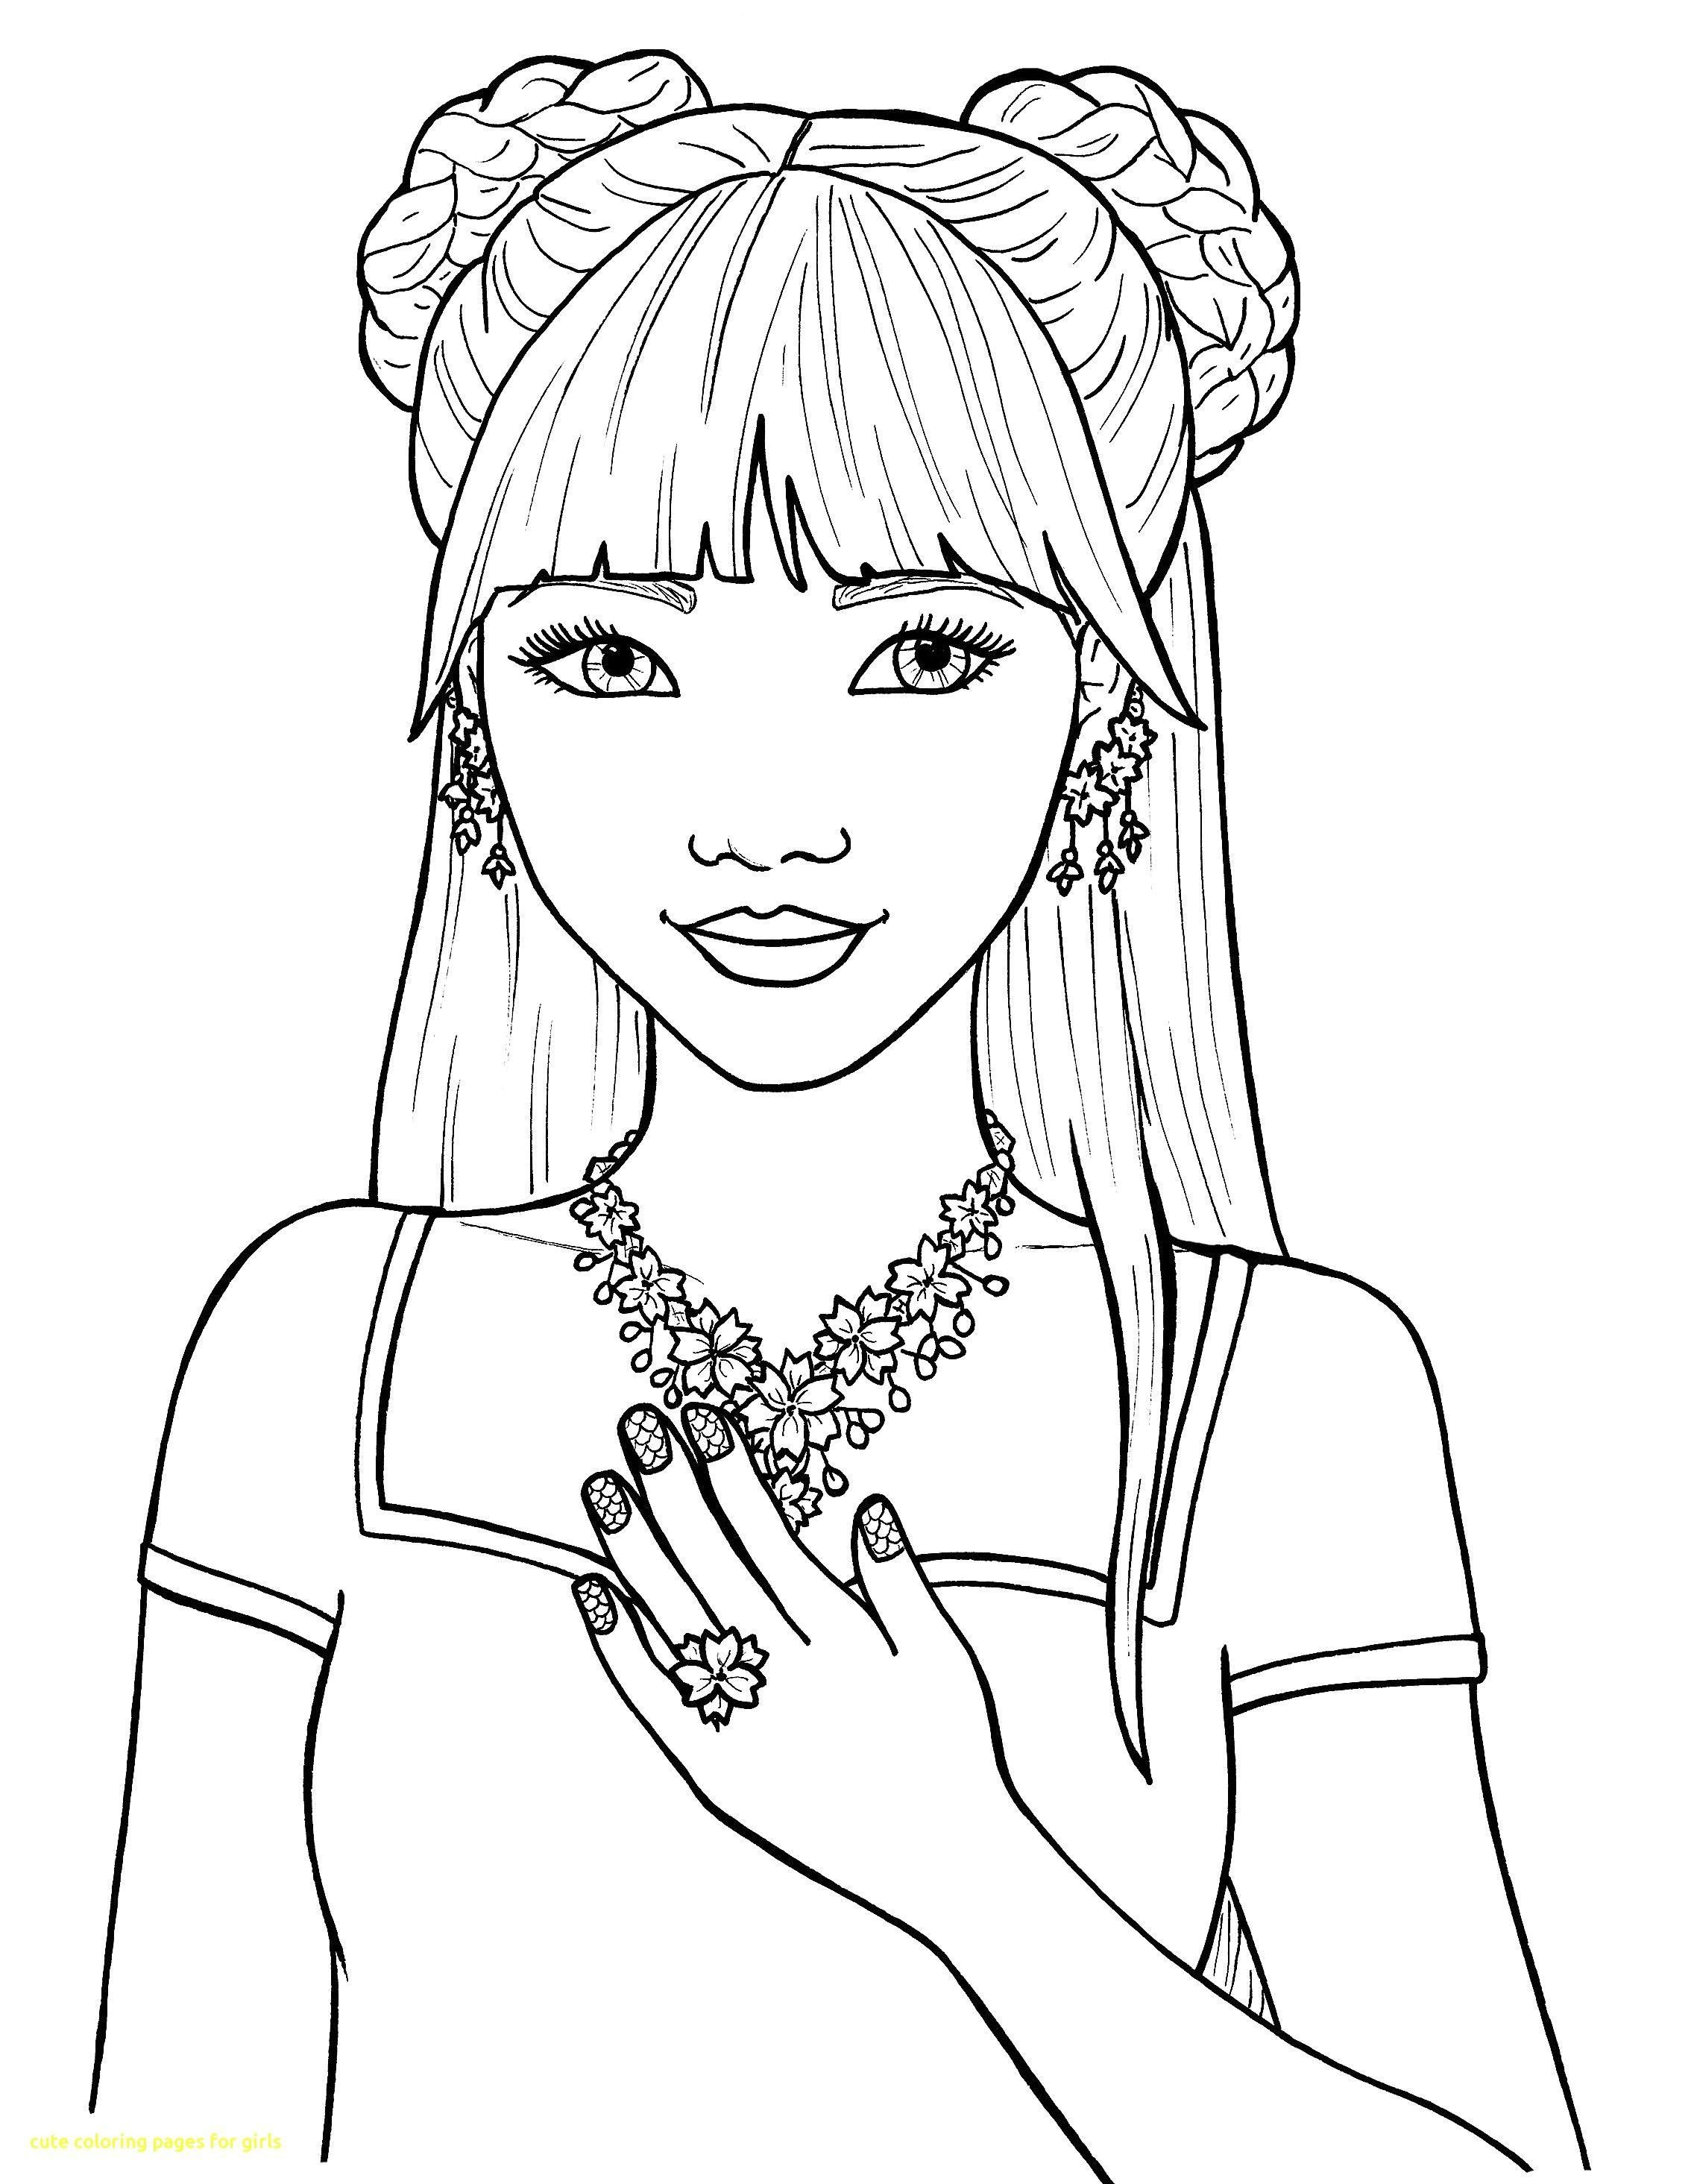 Printed Coloring Pages For Girls Printable Adult Coloring Pages